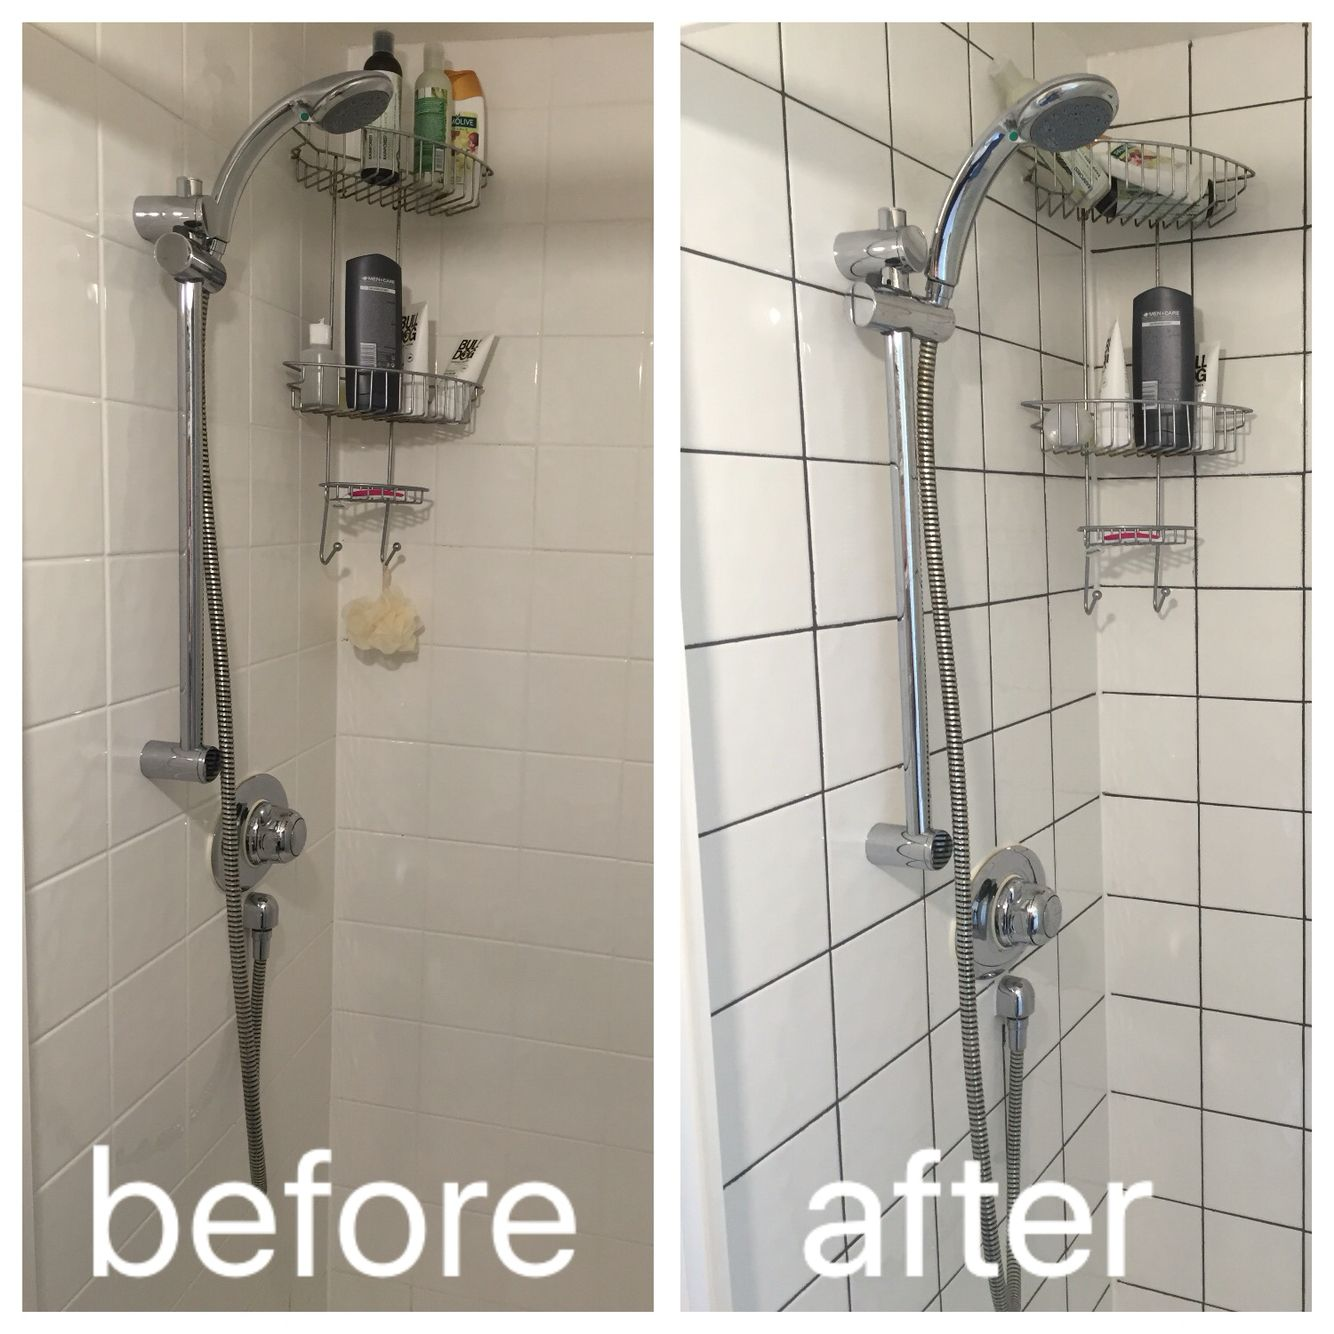 Bathroom Grout Regrouting With Dark Grey Grout To Modernise A Boring Shower